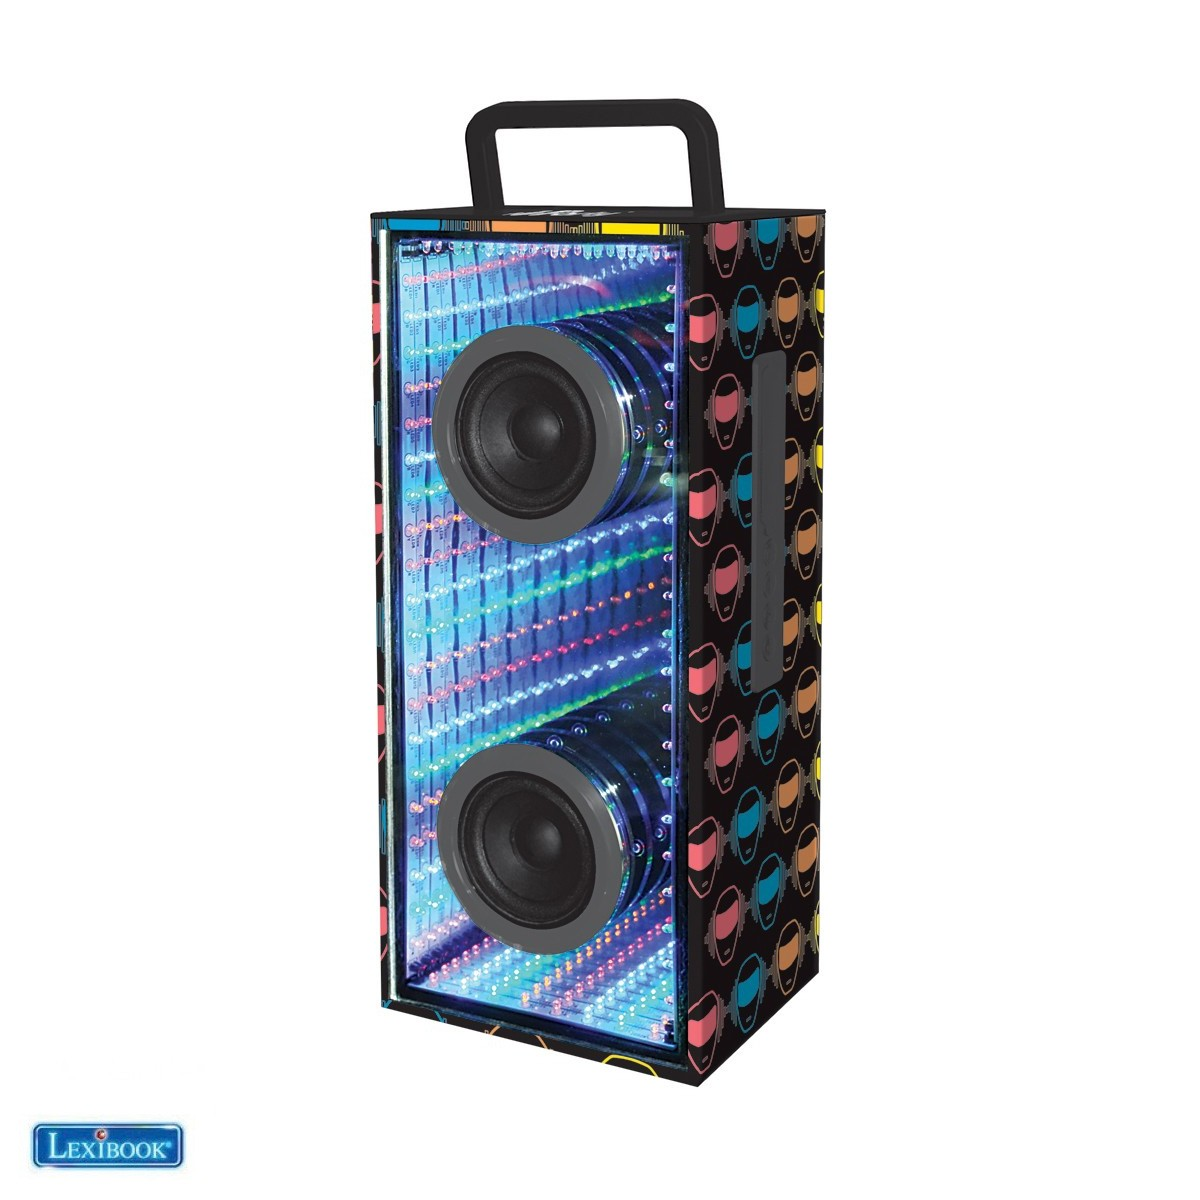 BTL600 Enceinte Bluetooth® FlashBoom iParty - Lexibook